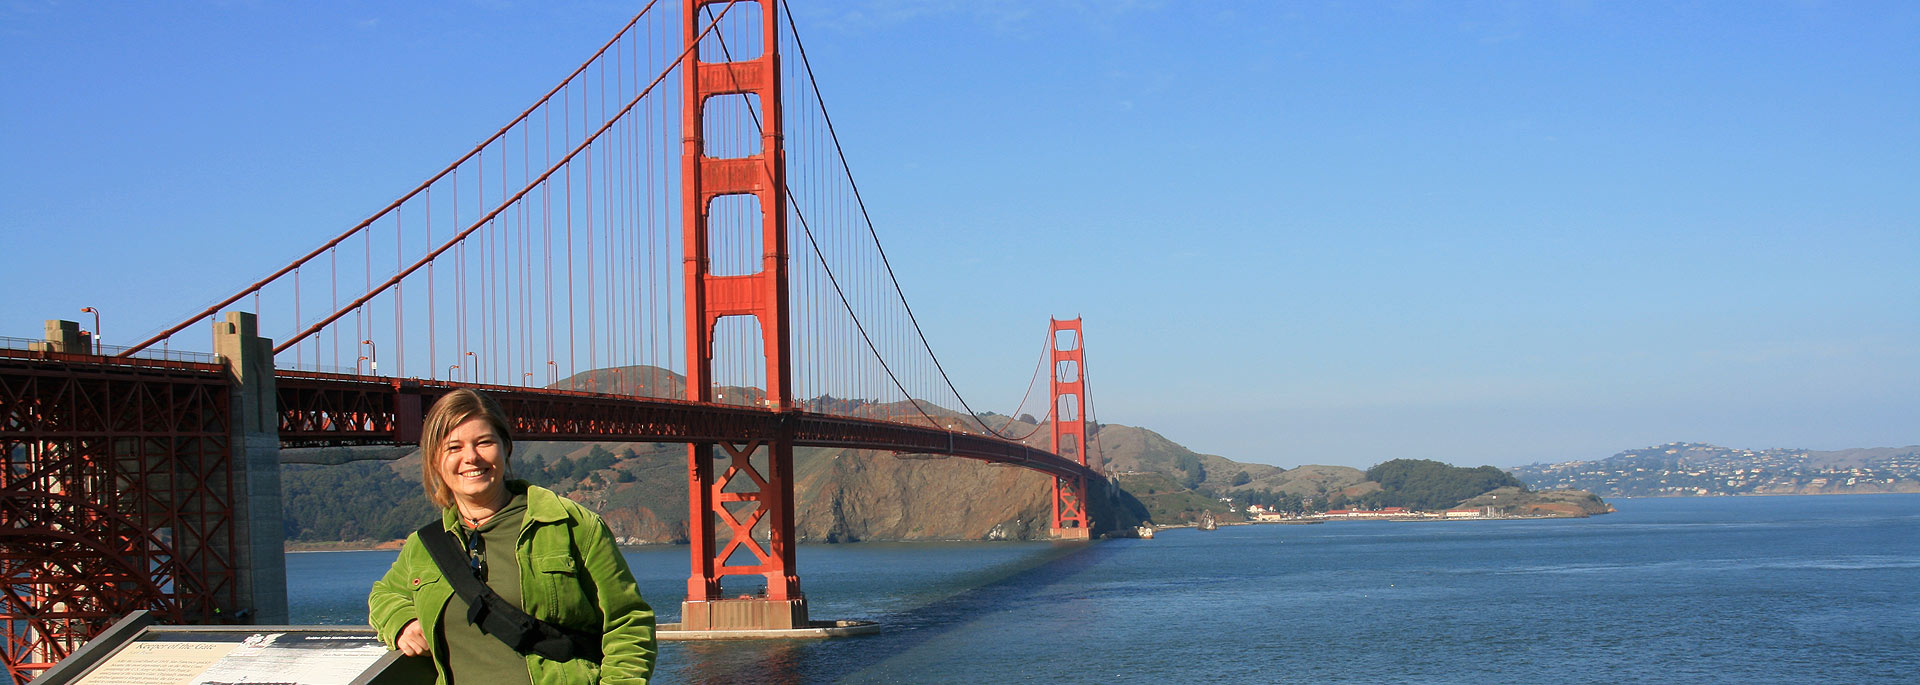 Fotos: Golden Gate Bridge in San Francisco